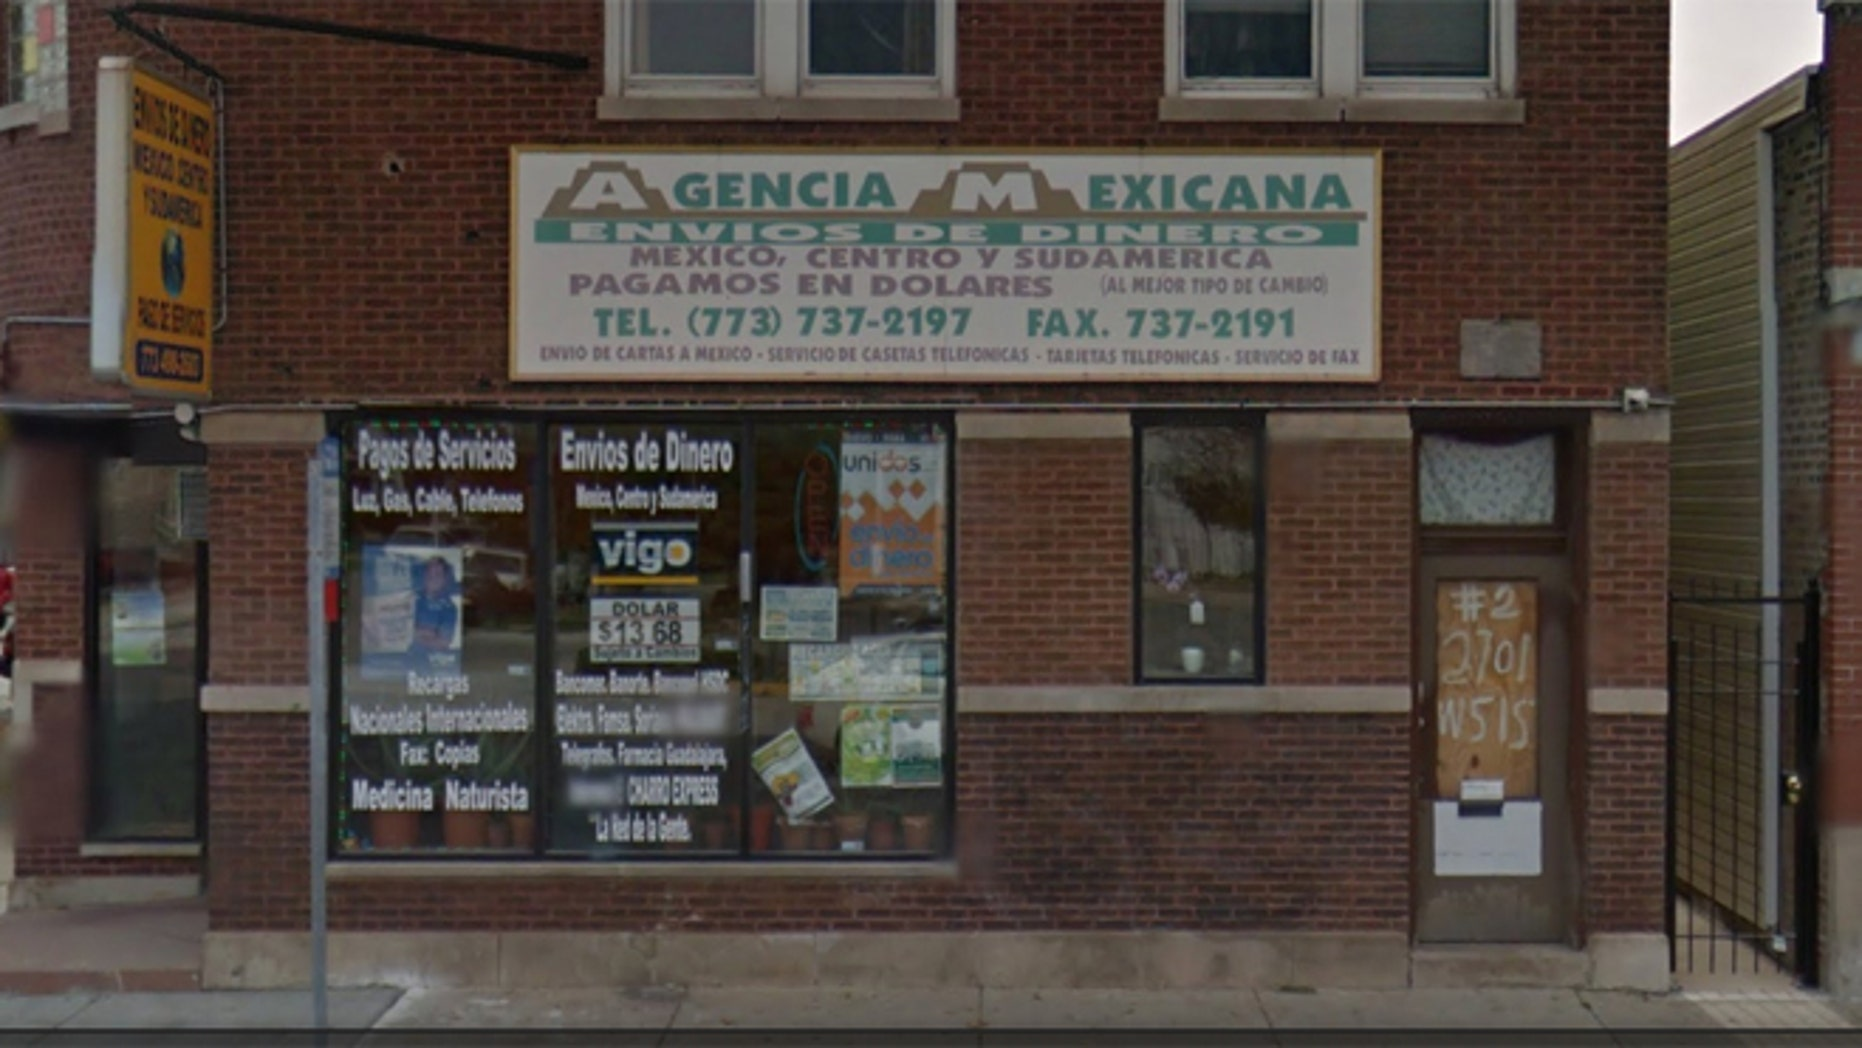 A patron with a concealed carry permit shot a would-be robber at a business in Chicago.